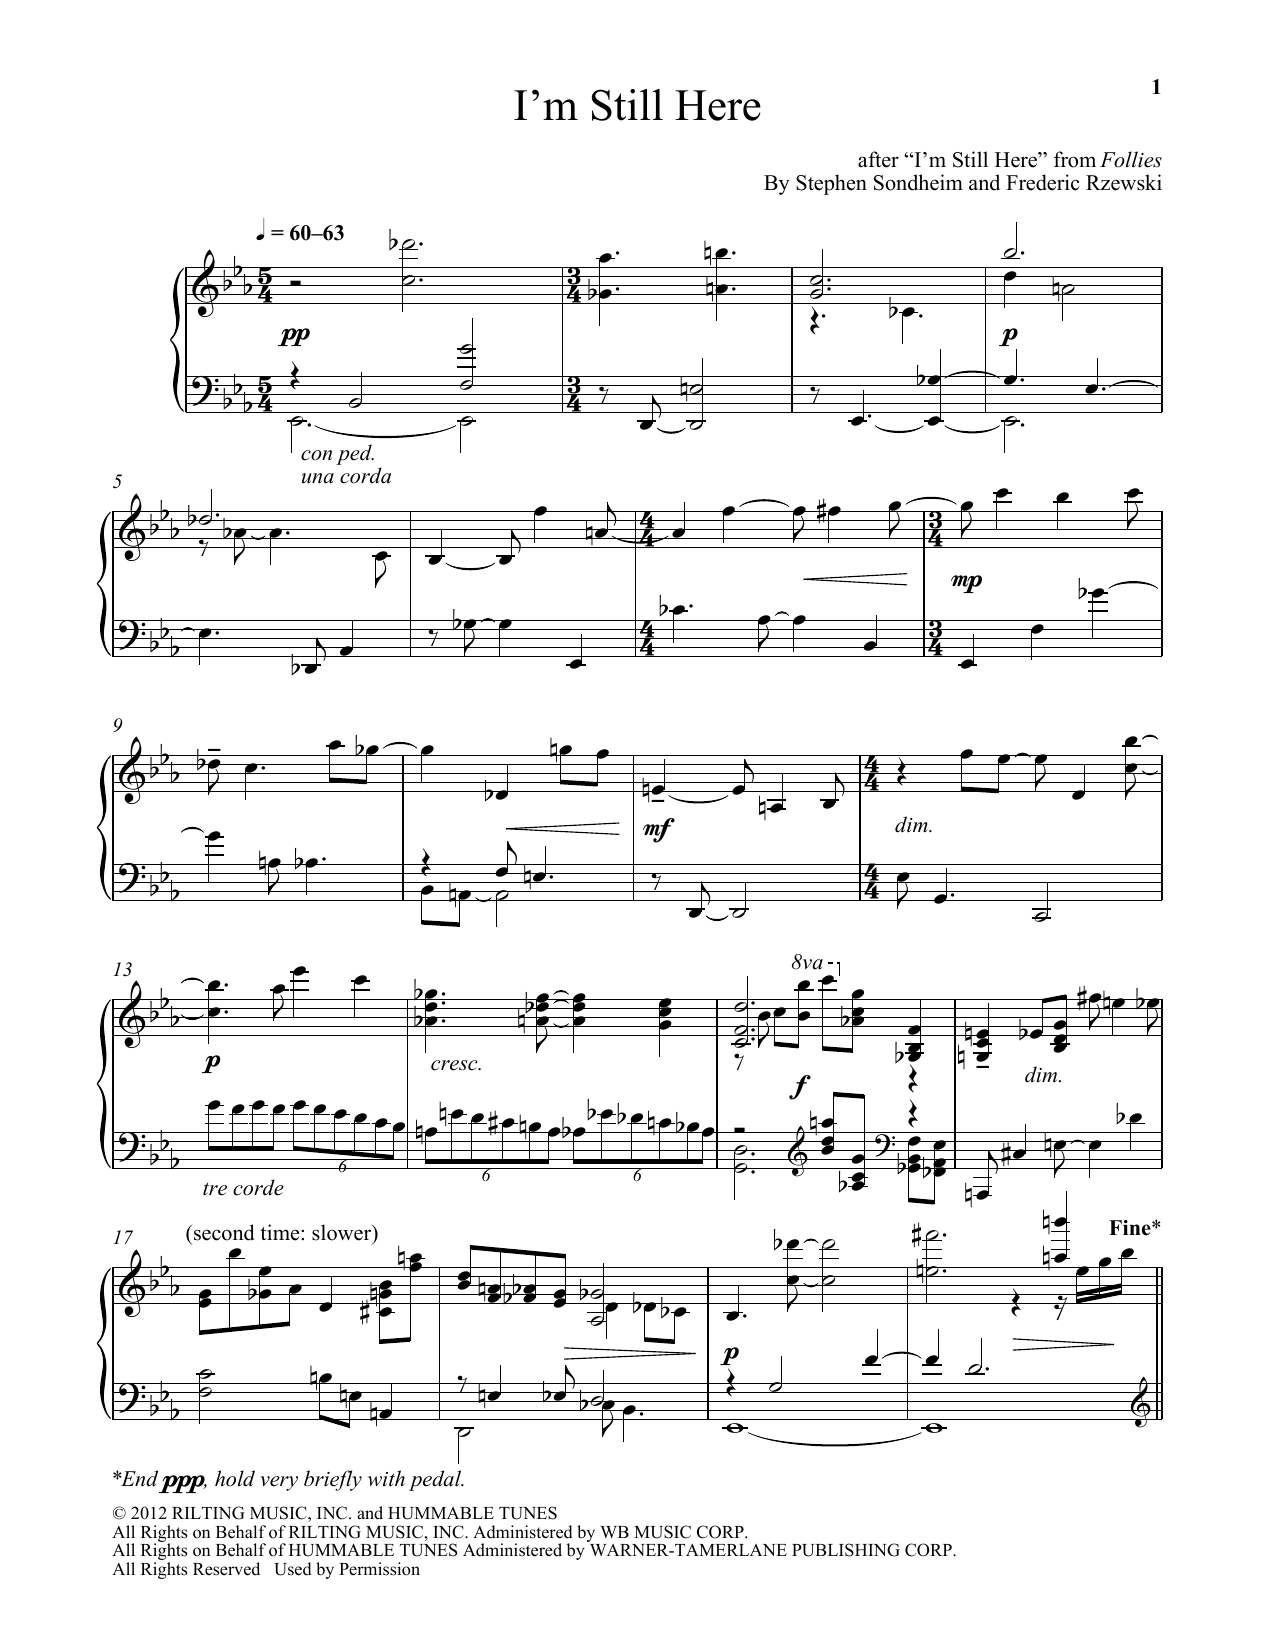 Frederic Rzewski I'm Still Here sheet music notes and chords. Download Printable PDF.